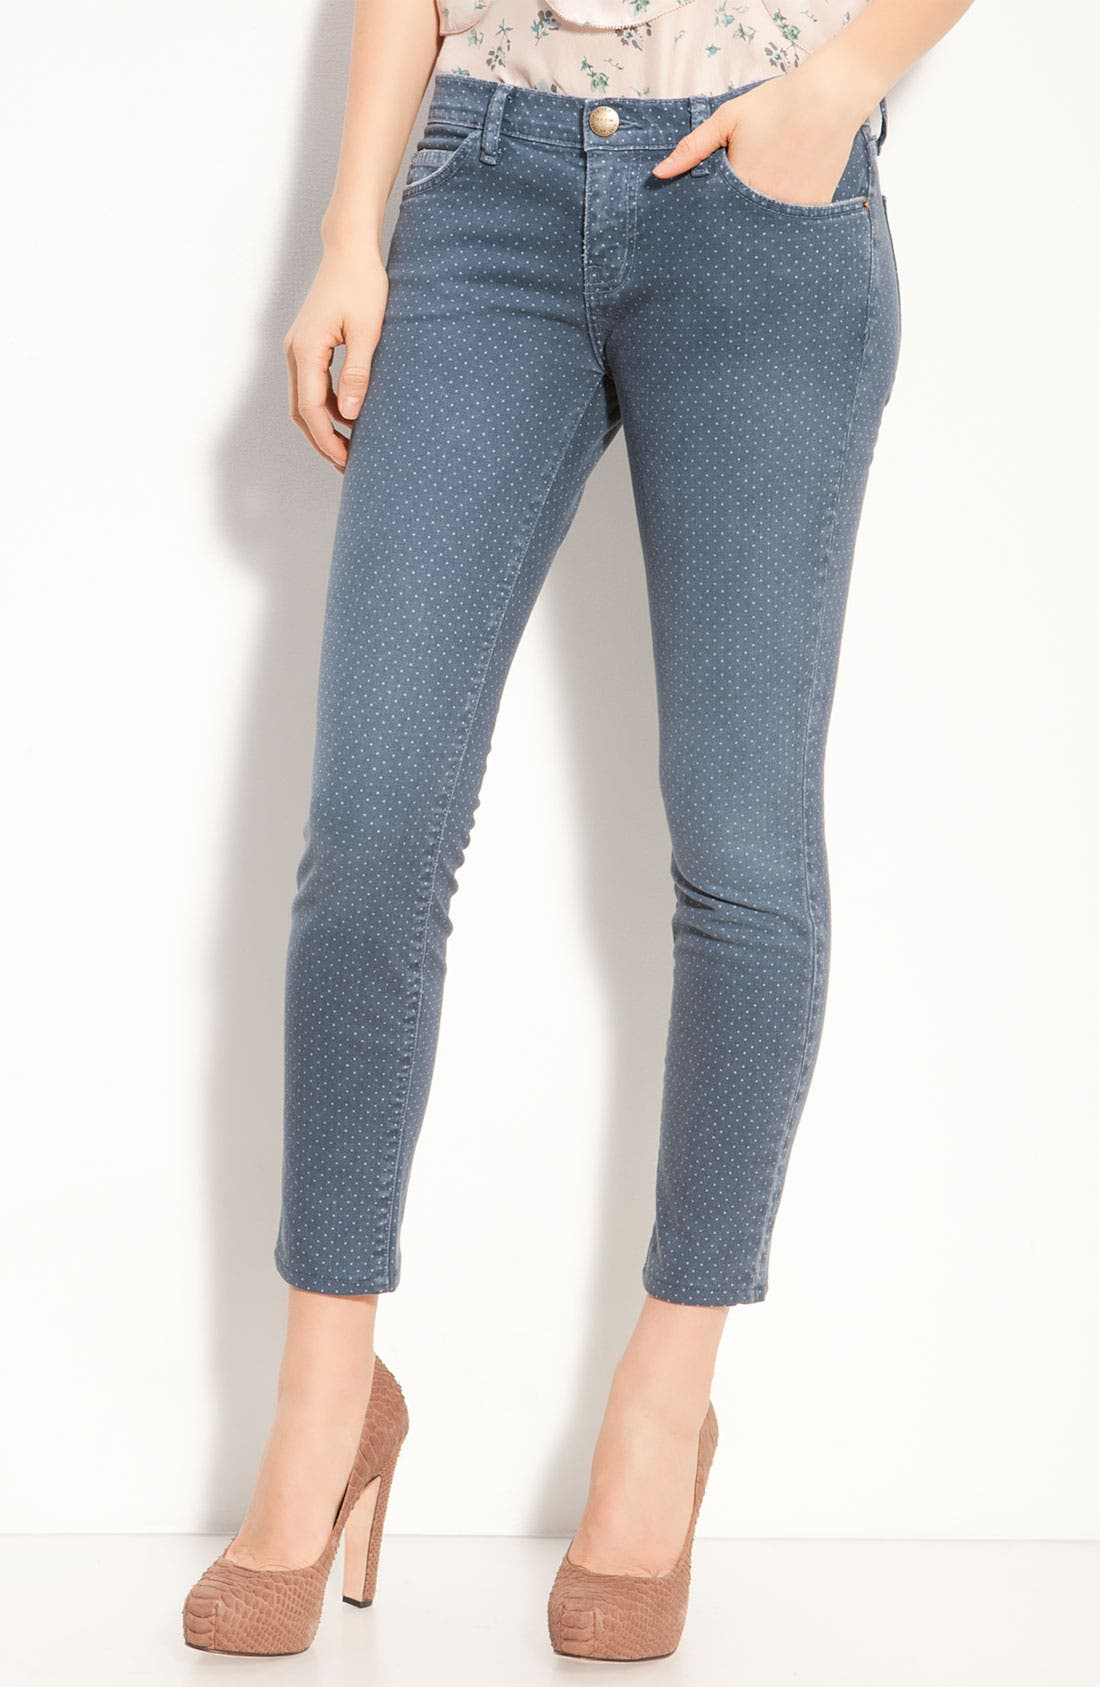 Alternate Image 1 Selected - Current/Elliott 'The Stiletto' Stretch Jeans (Lake Wash)